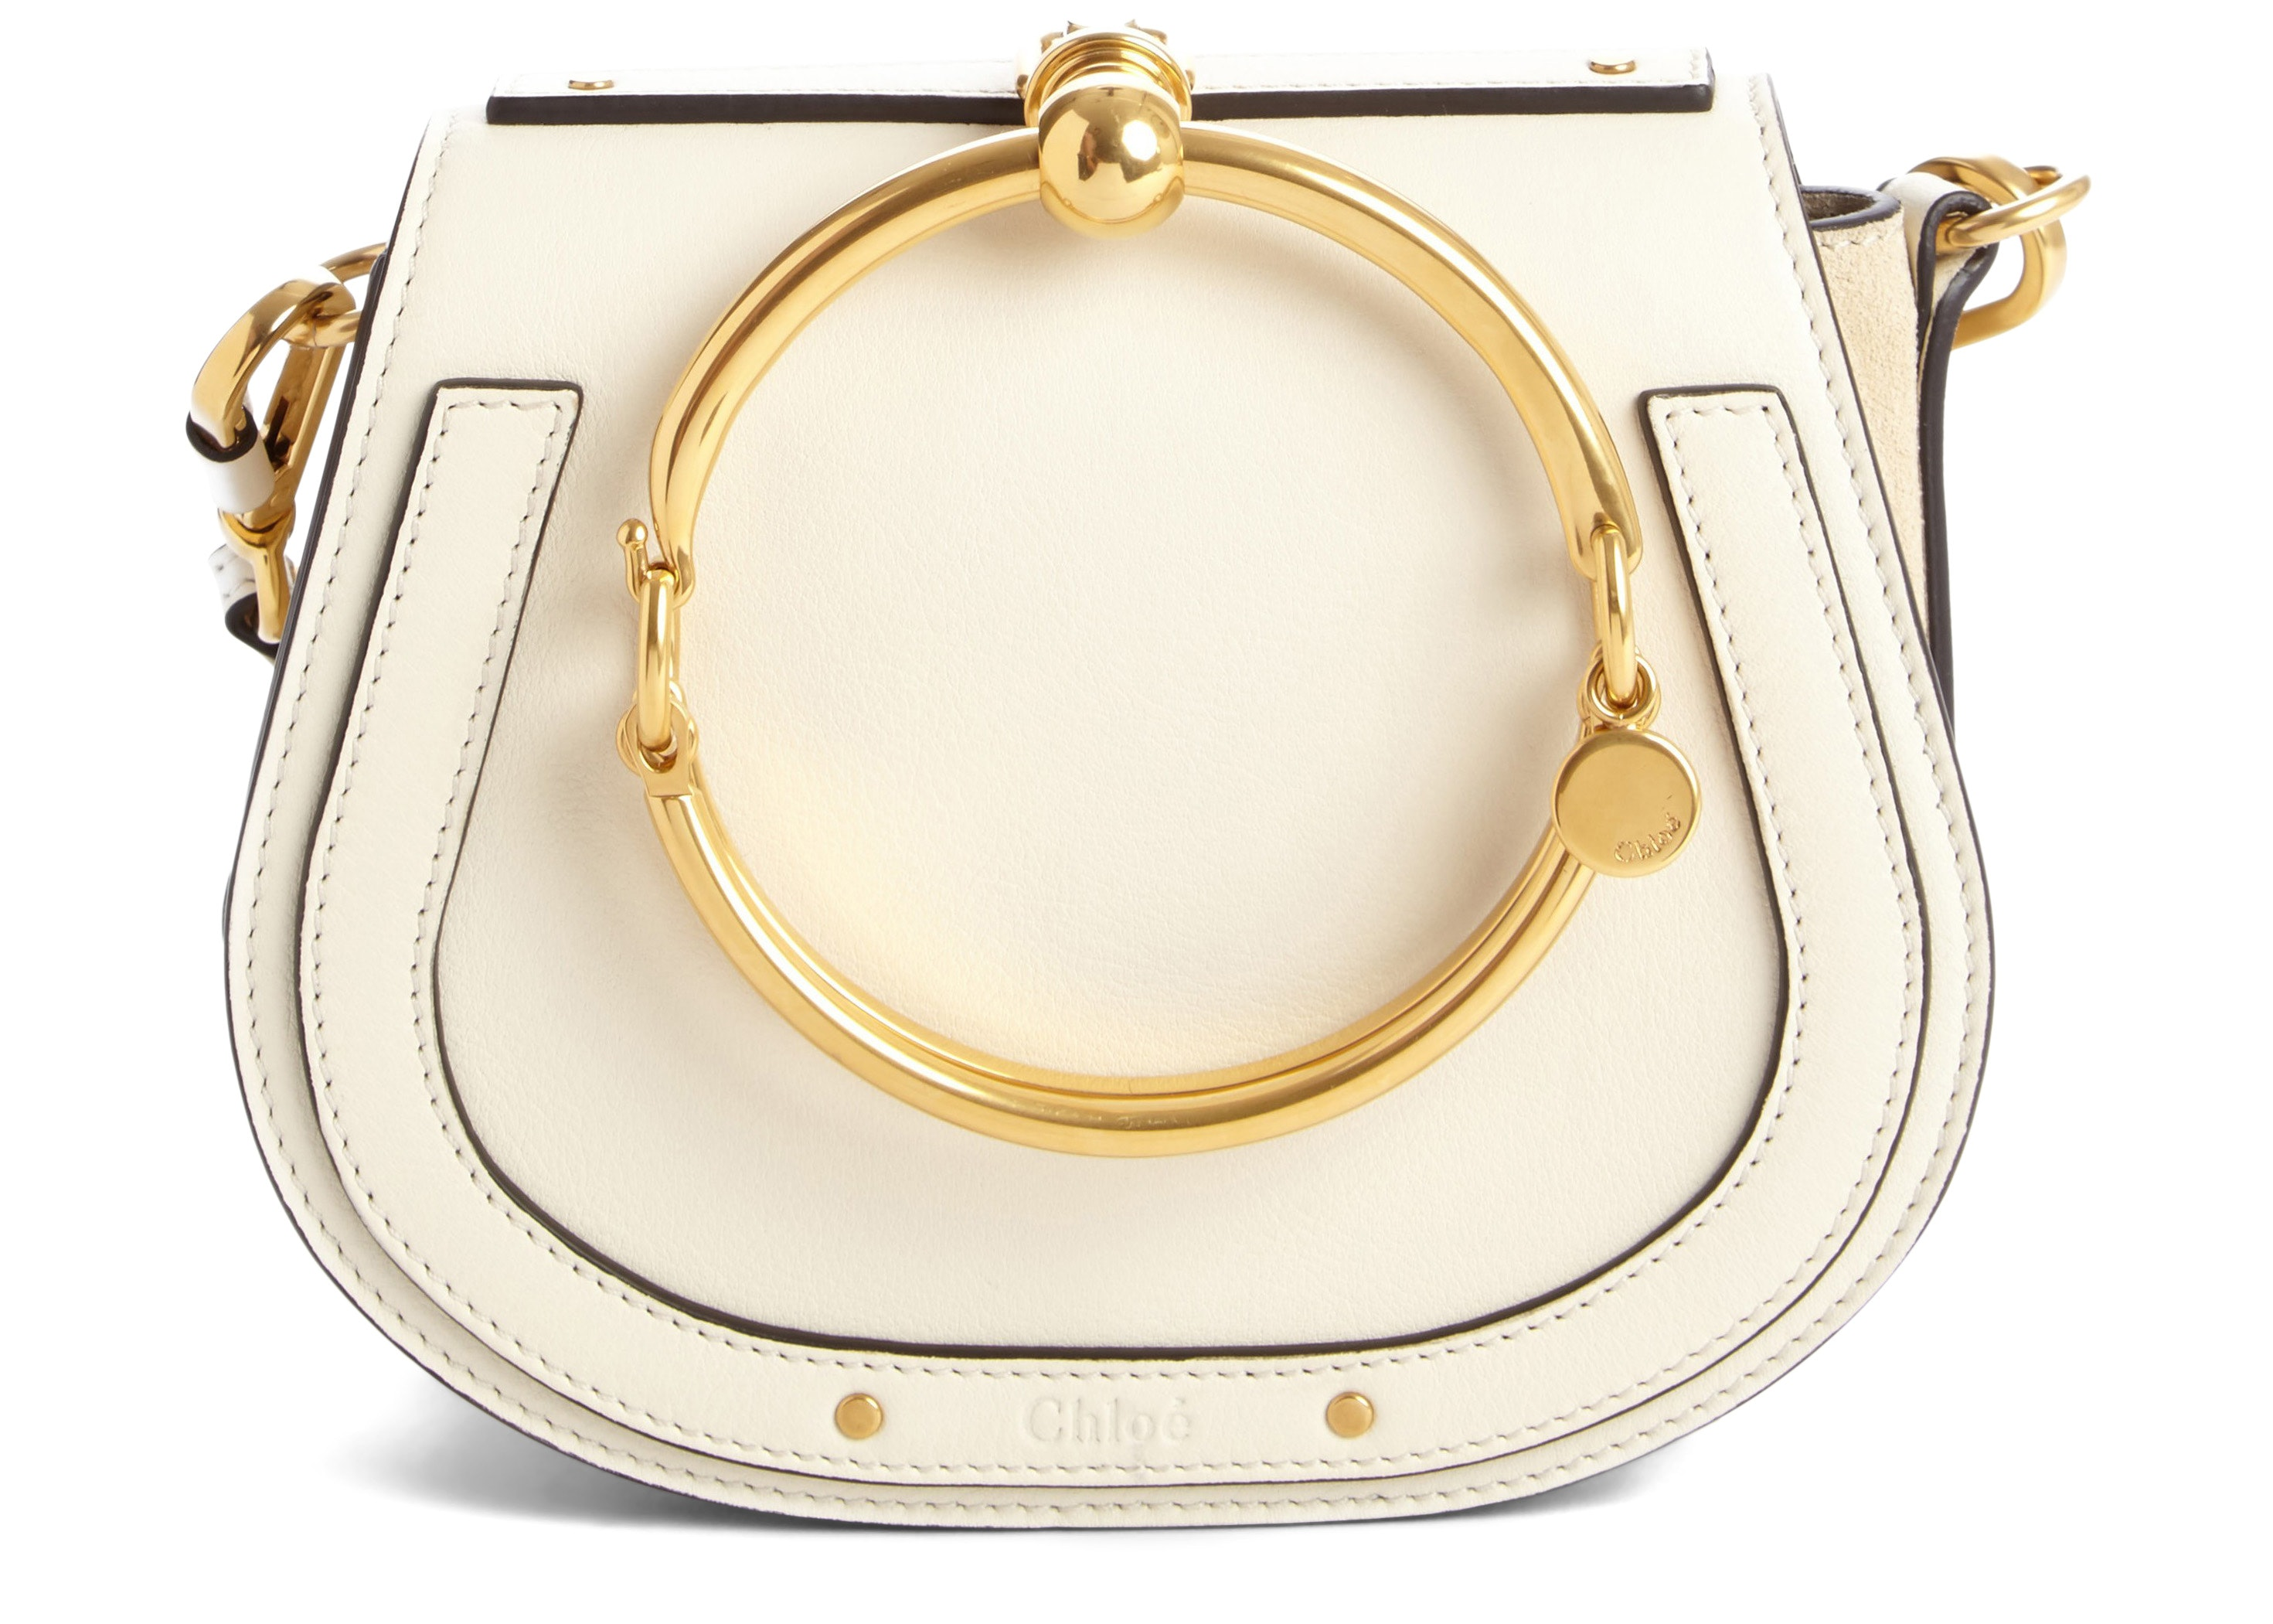 Chloe Nile Crossbody Bracelet Small Off White